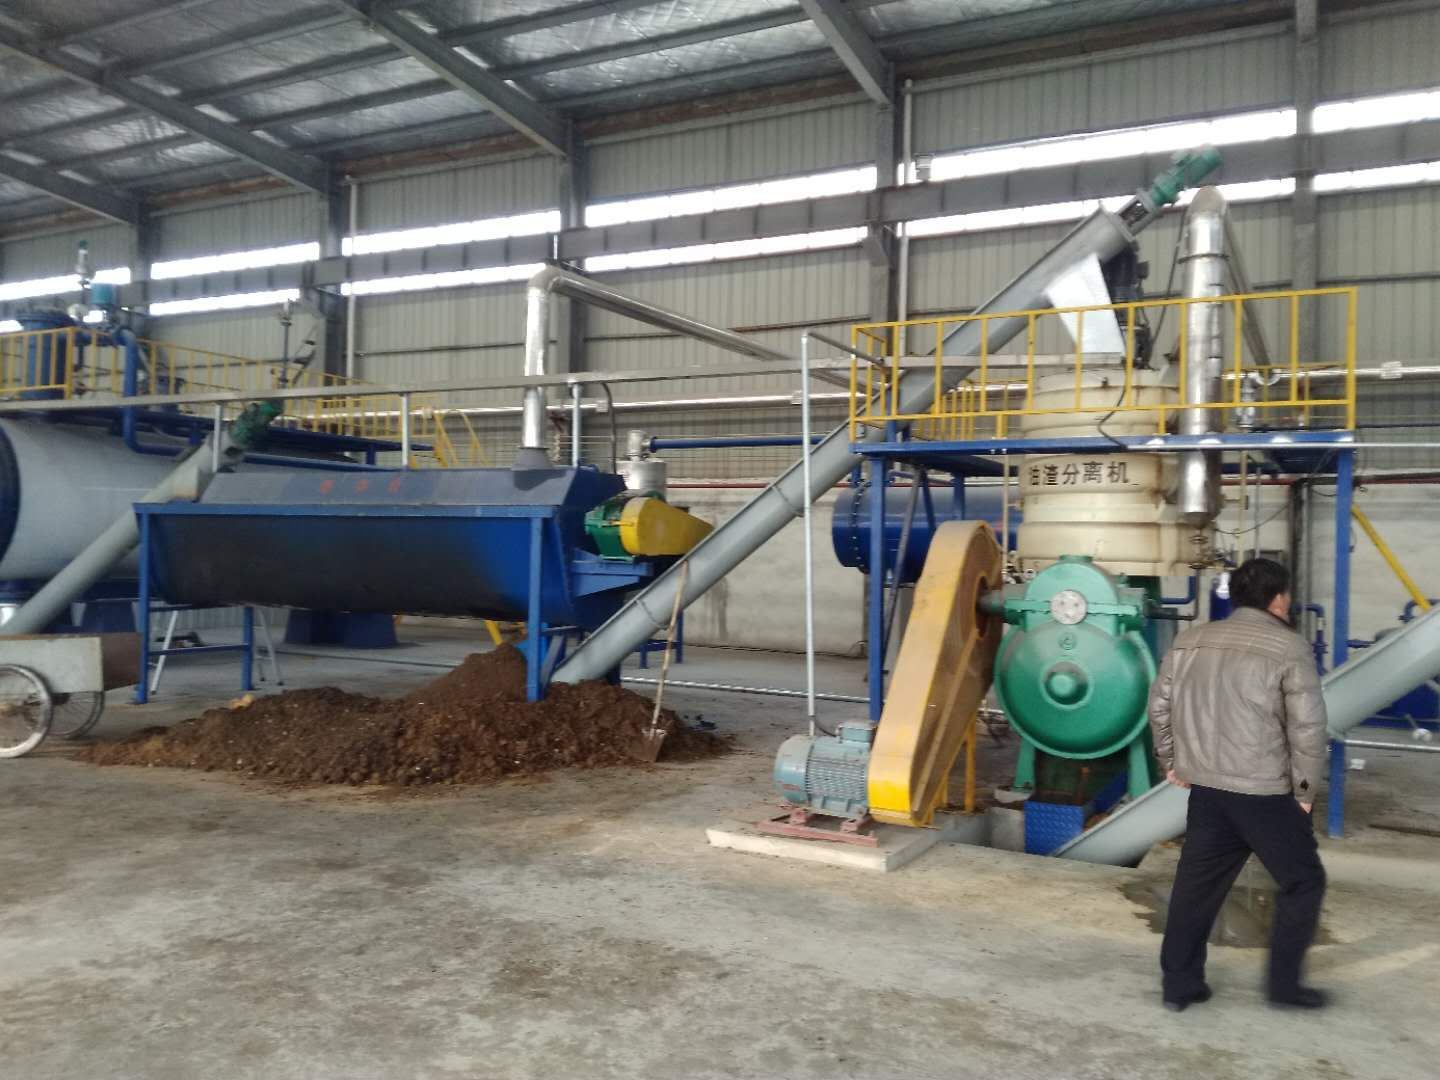 Epuipment for production of animal fats, meat and bone meal, plant oil, biodiesel